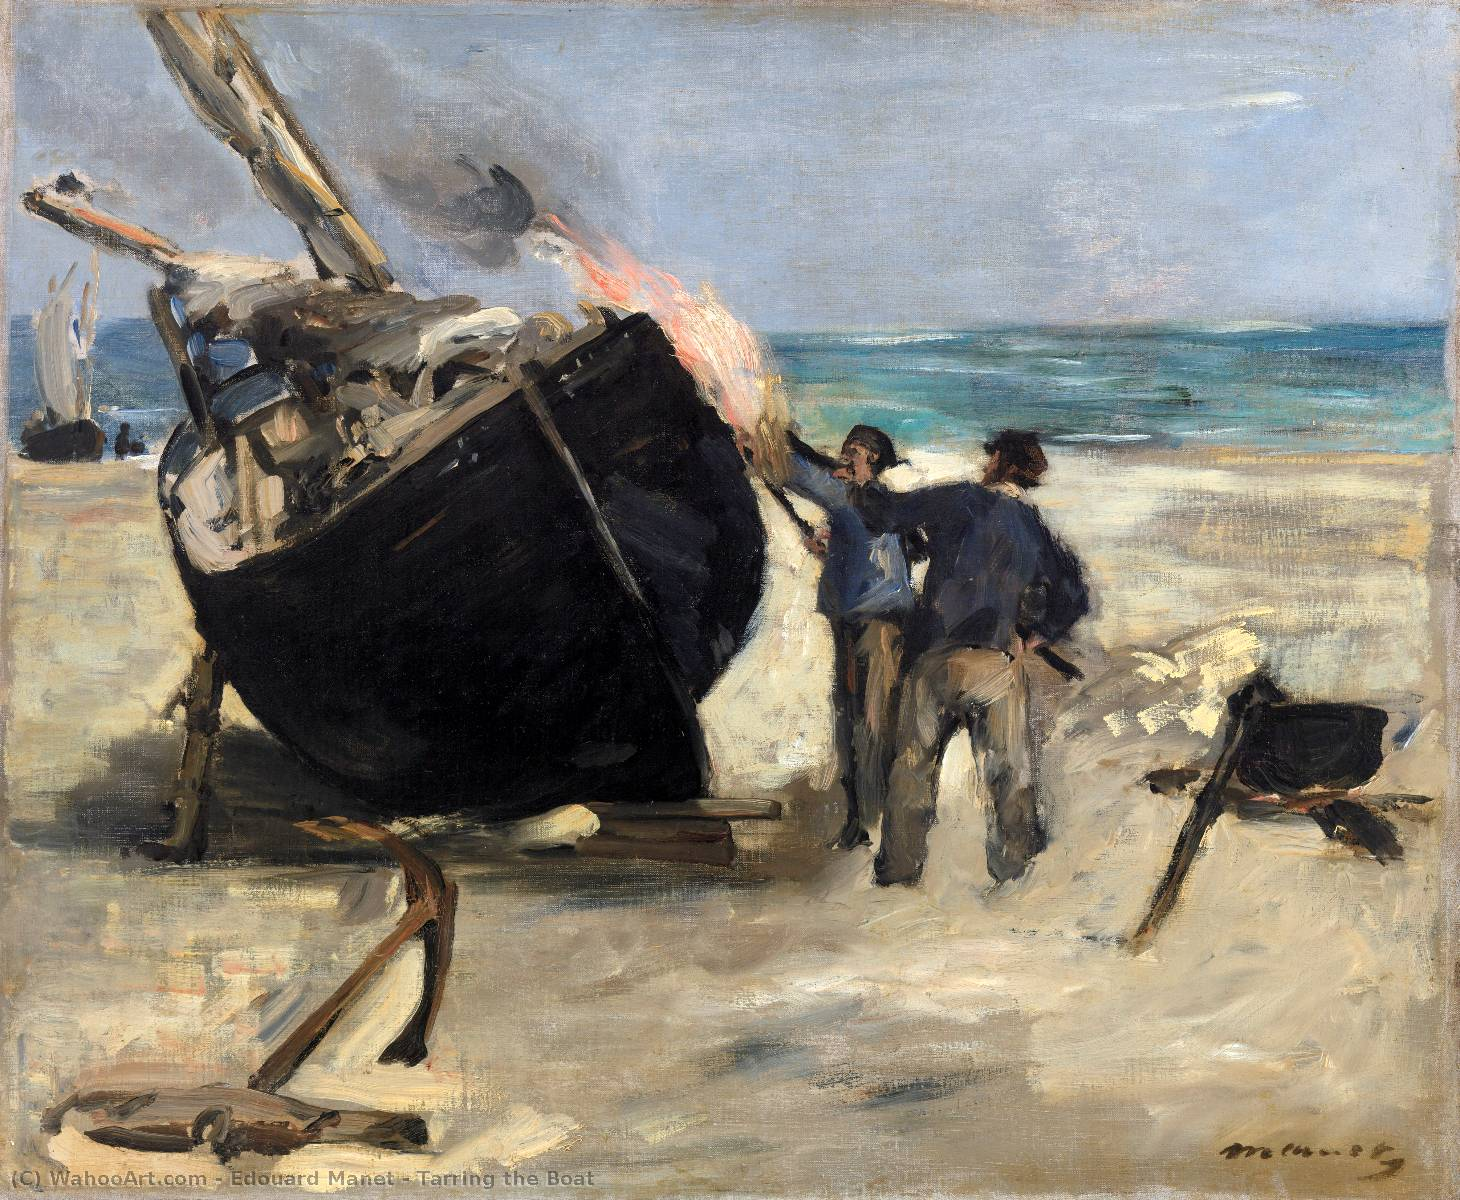 famous painting Tarring the Boat of Edouard Manet